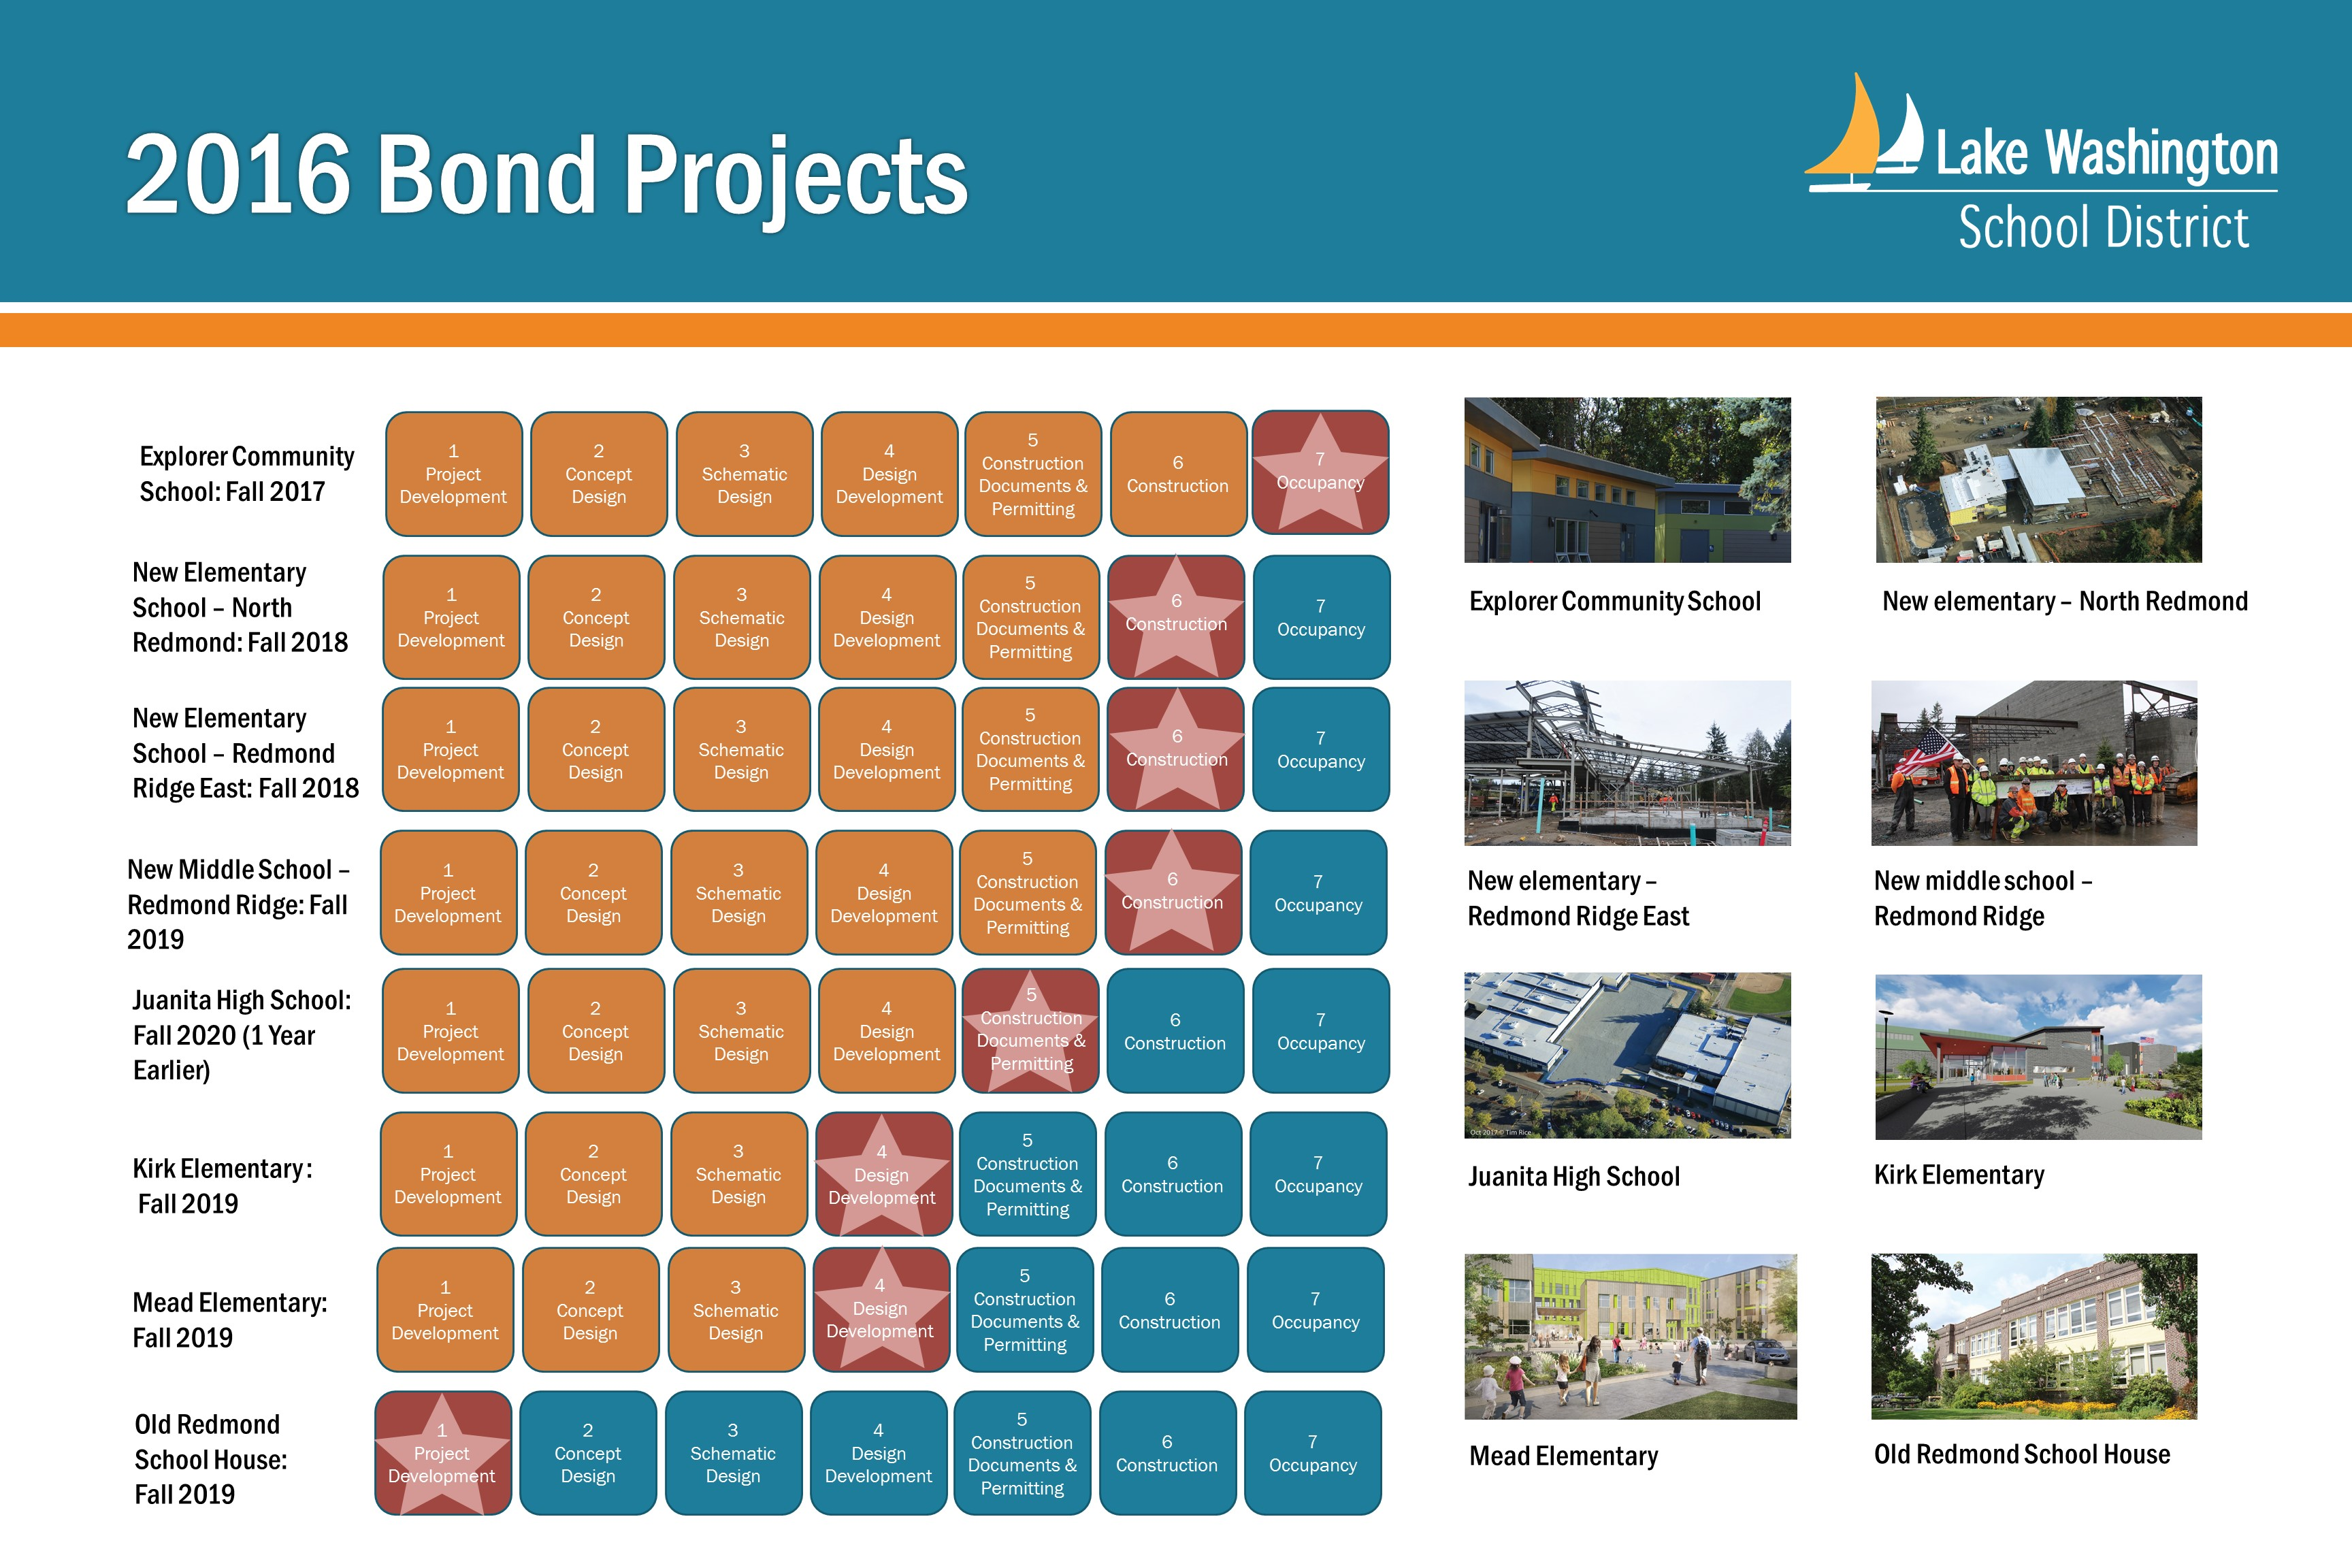 Status of 2016 Bond Projects as of January 2018